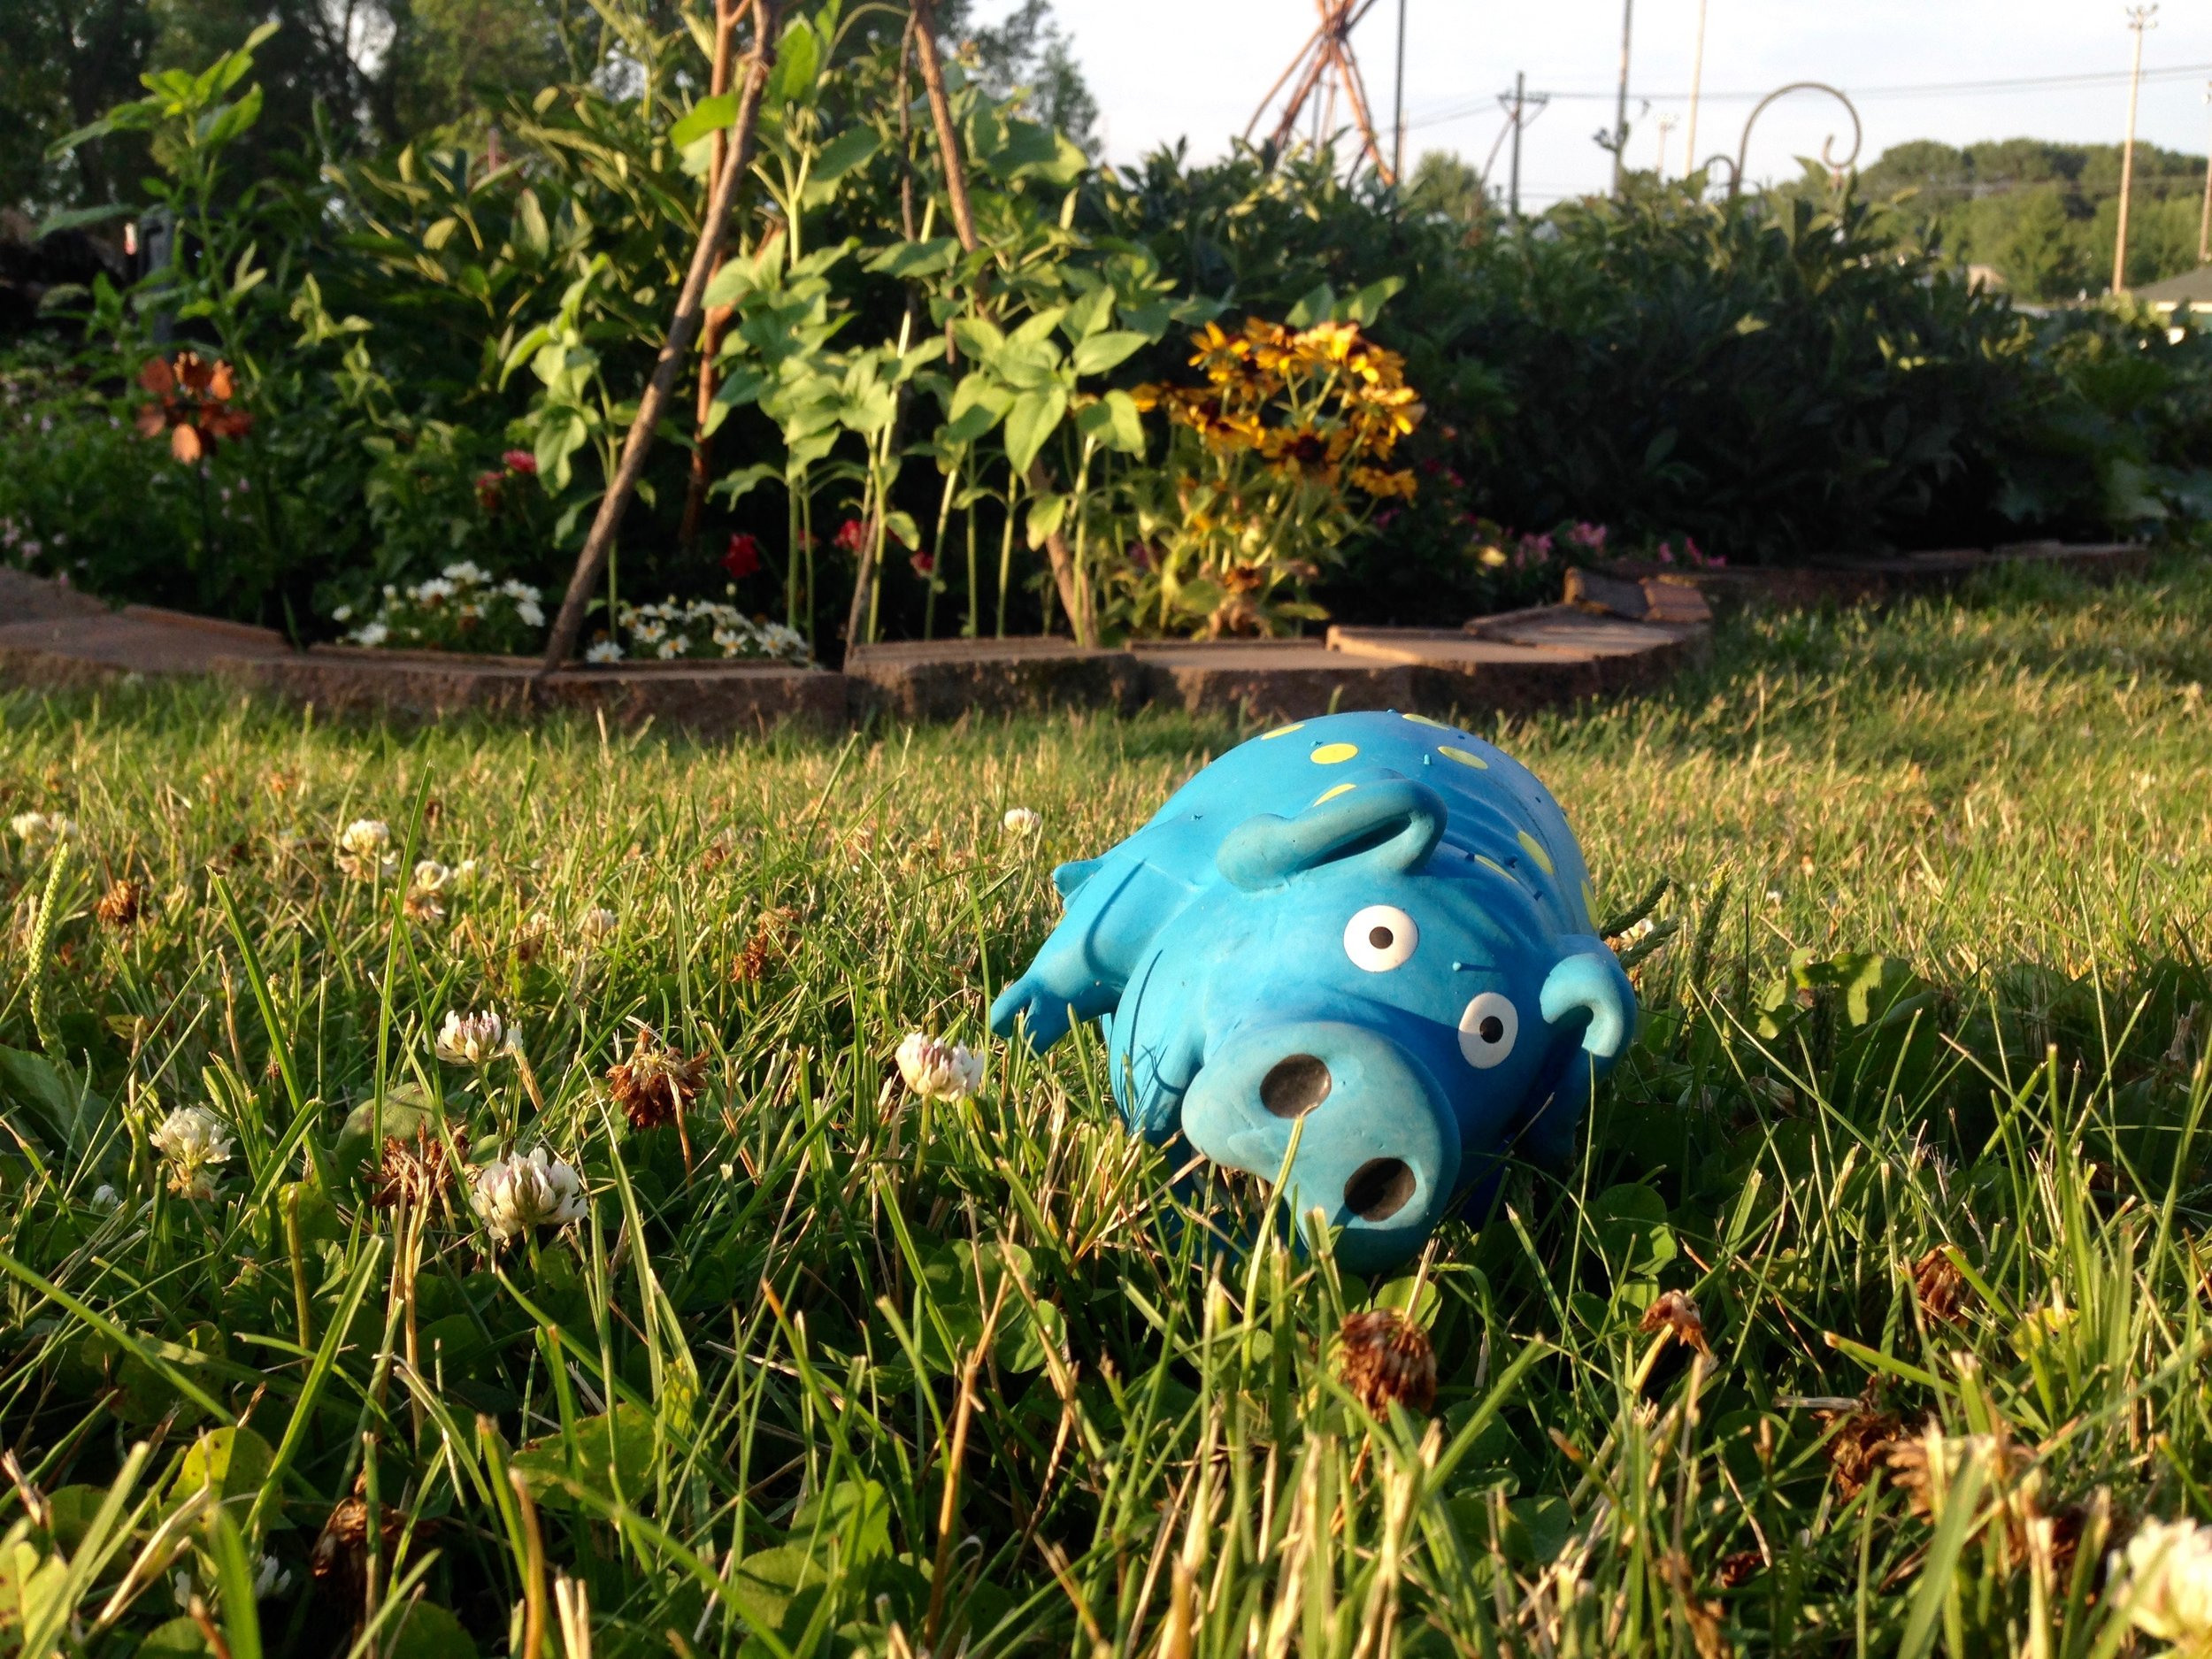 I found my dog's toy laying in yard one night, bug-eyed and squished on every side. I relate to this Mr. Pig toy most days. Don't most mamas?